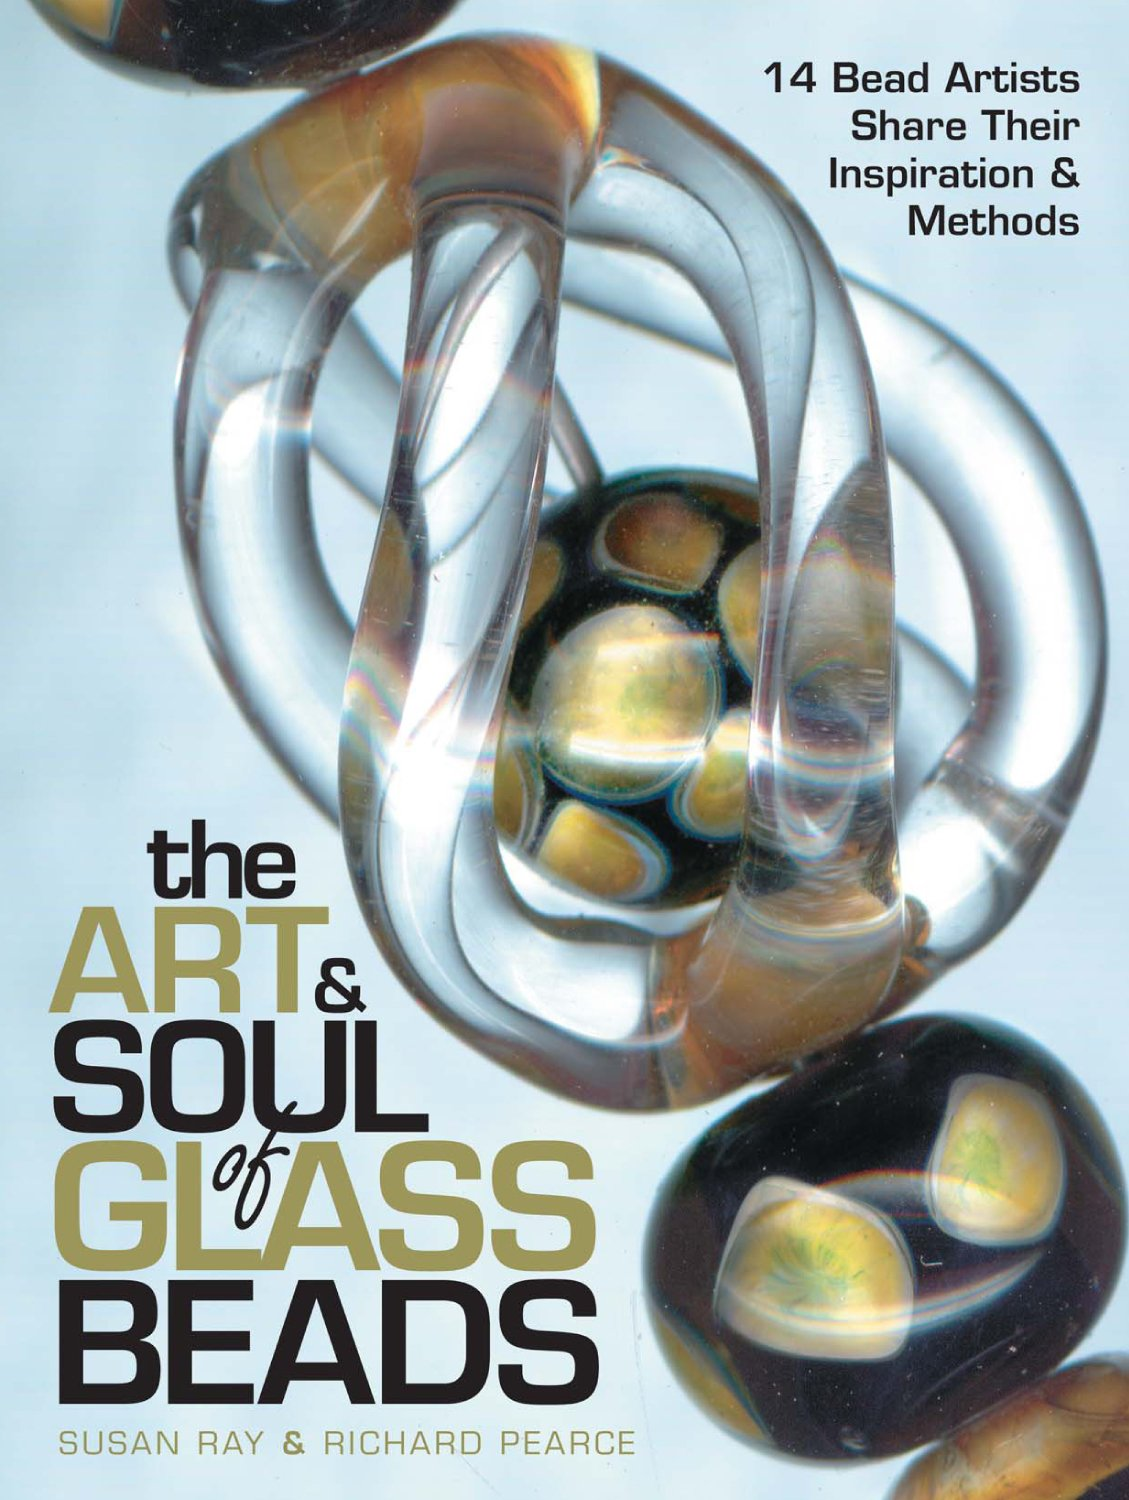 Download The Art & Soul of Glass Beads: 17 Bead Artists Share Their Inspiration & Methods PDF